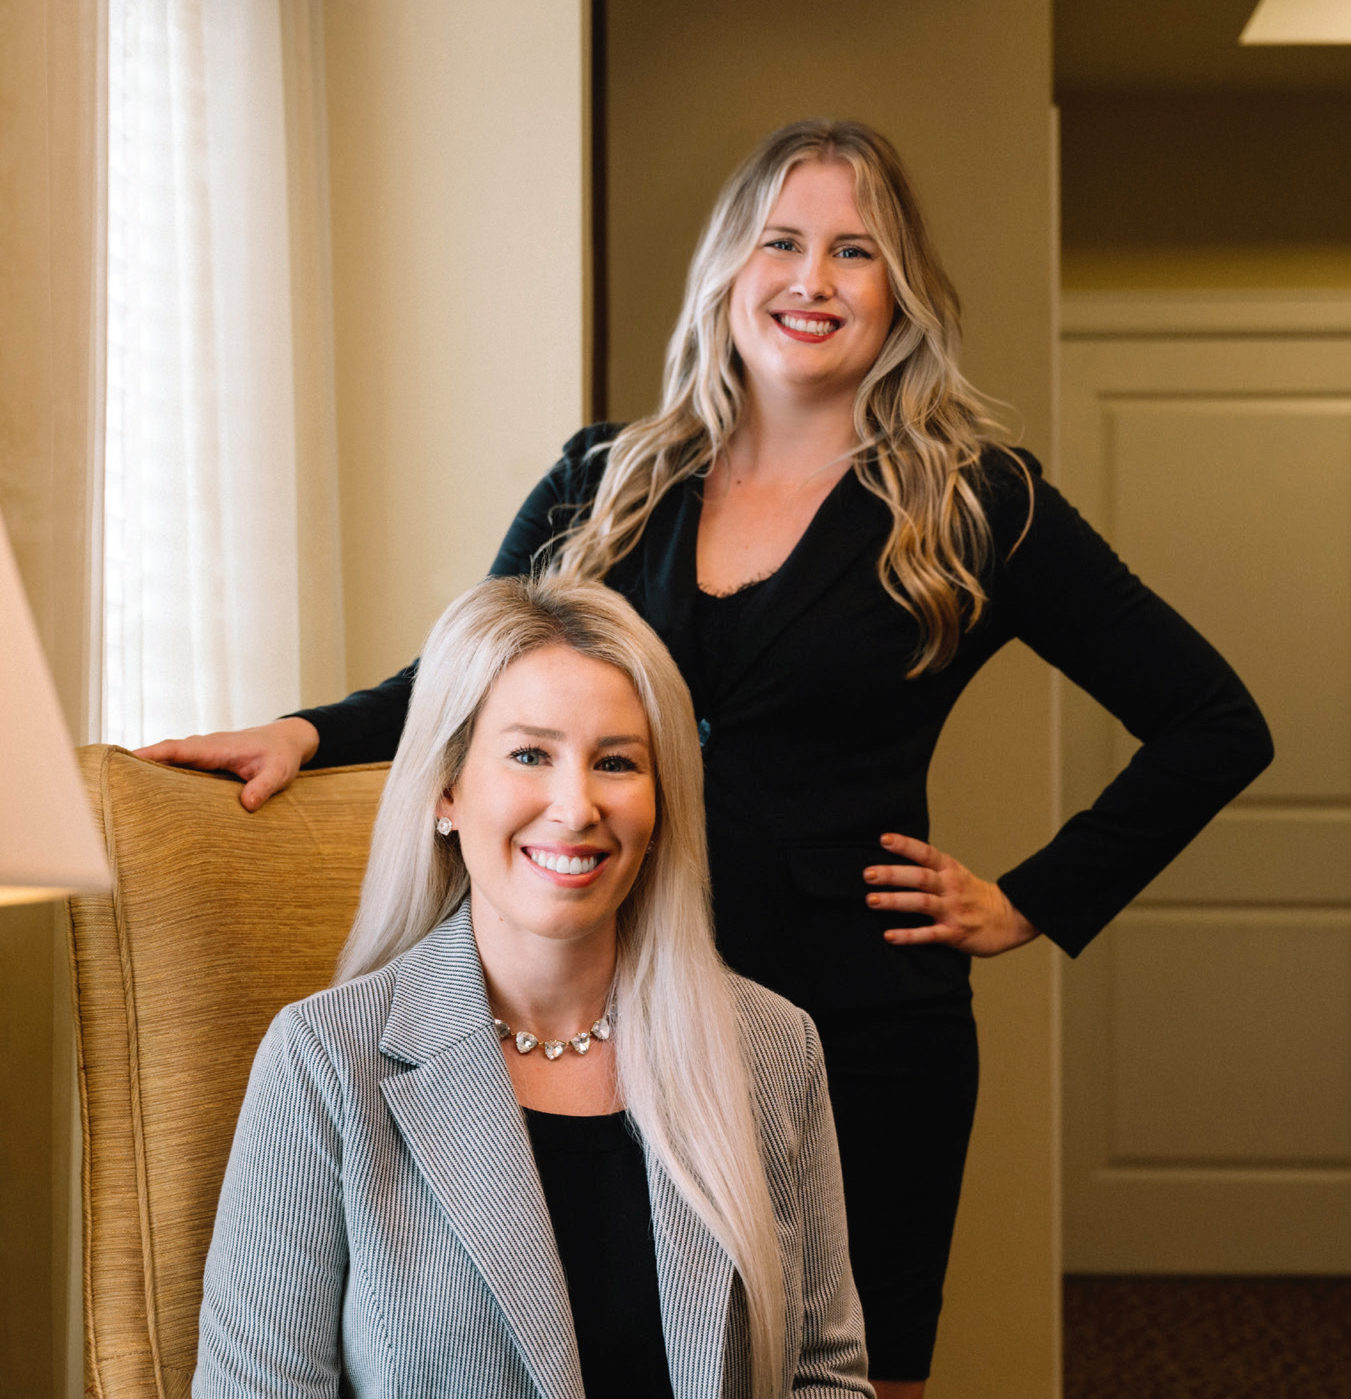 Avery Holley & Kristin Howard: Directors of Sales & Marketing FRANKLIN PARK SONTERRA